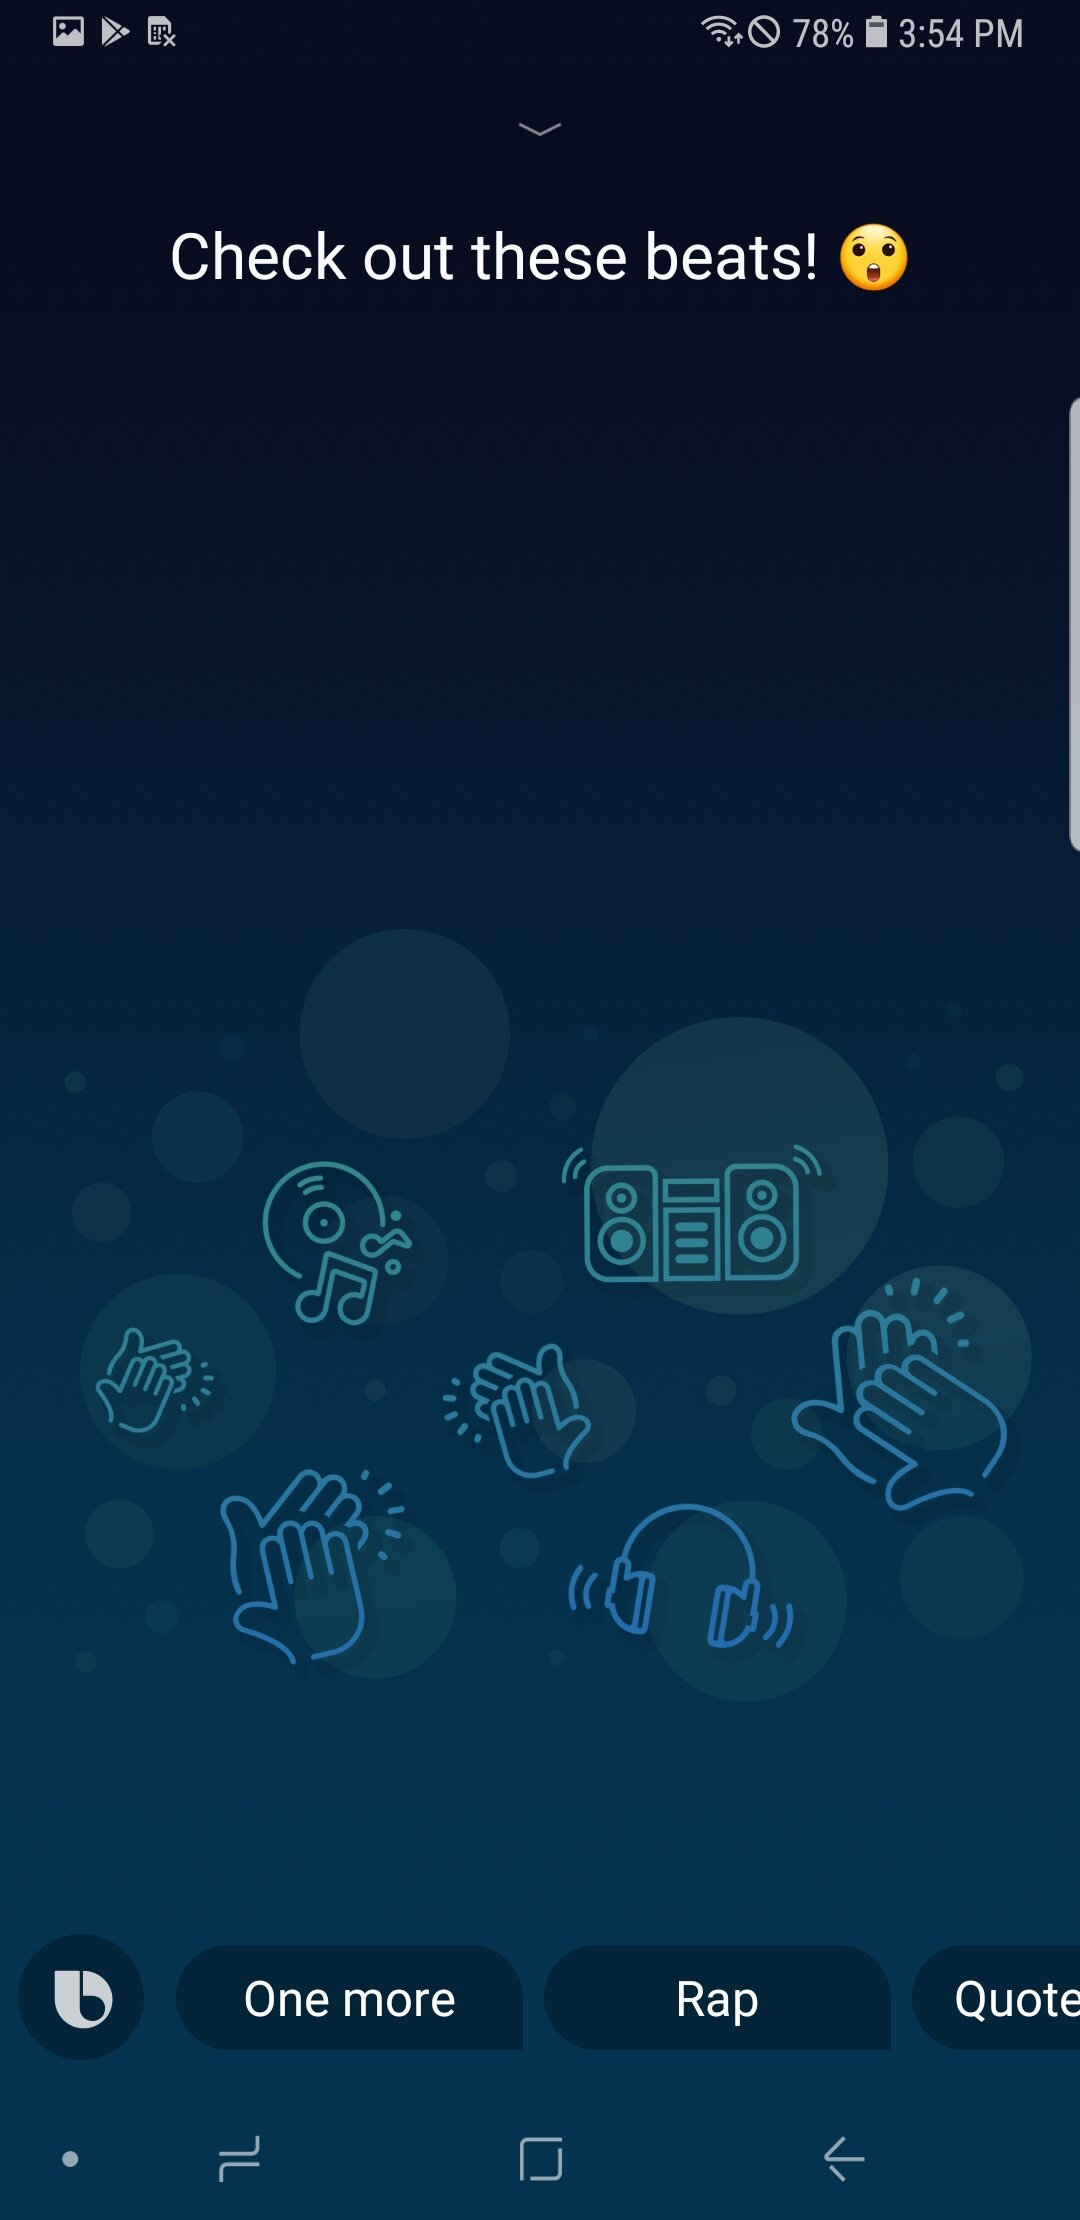 Screenshot_20190923-155413_Bixby Voice.jpg